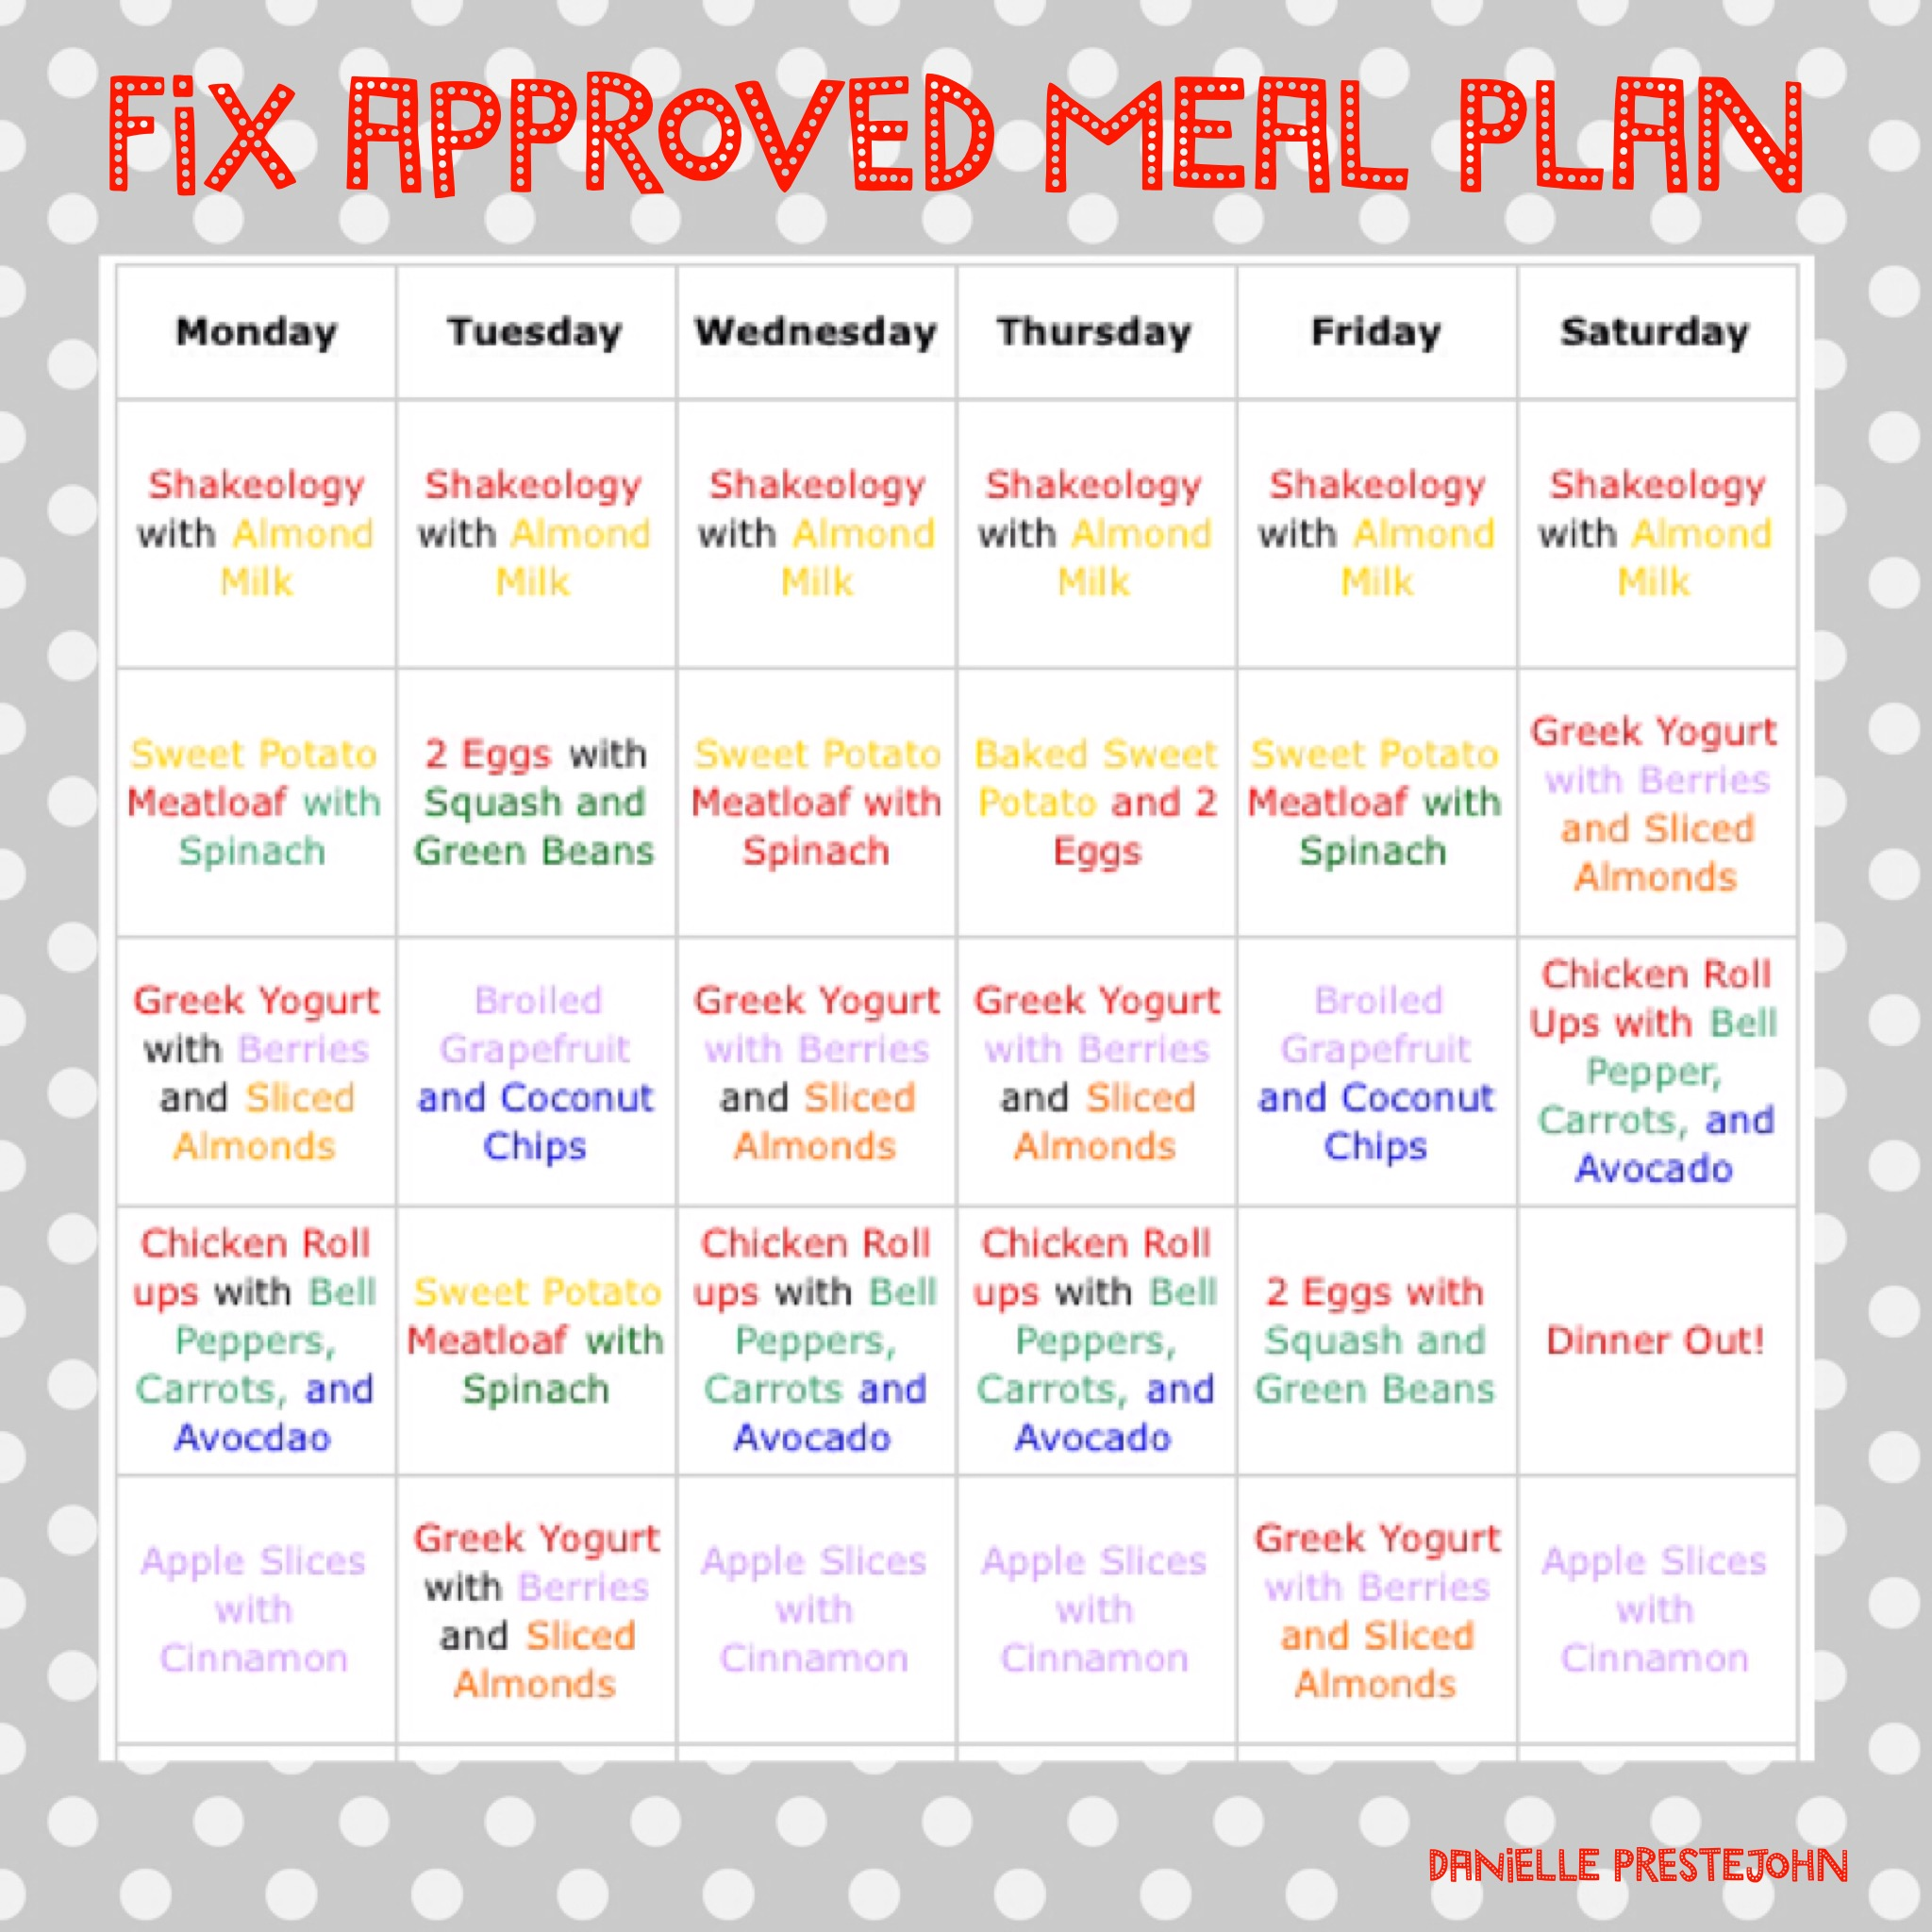 21 Day Fix Approved Meal Plan